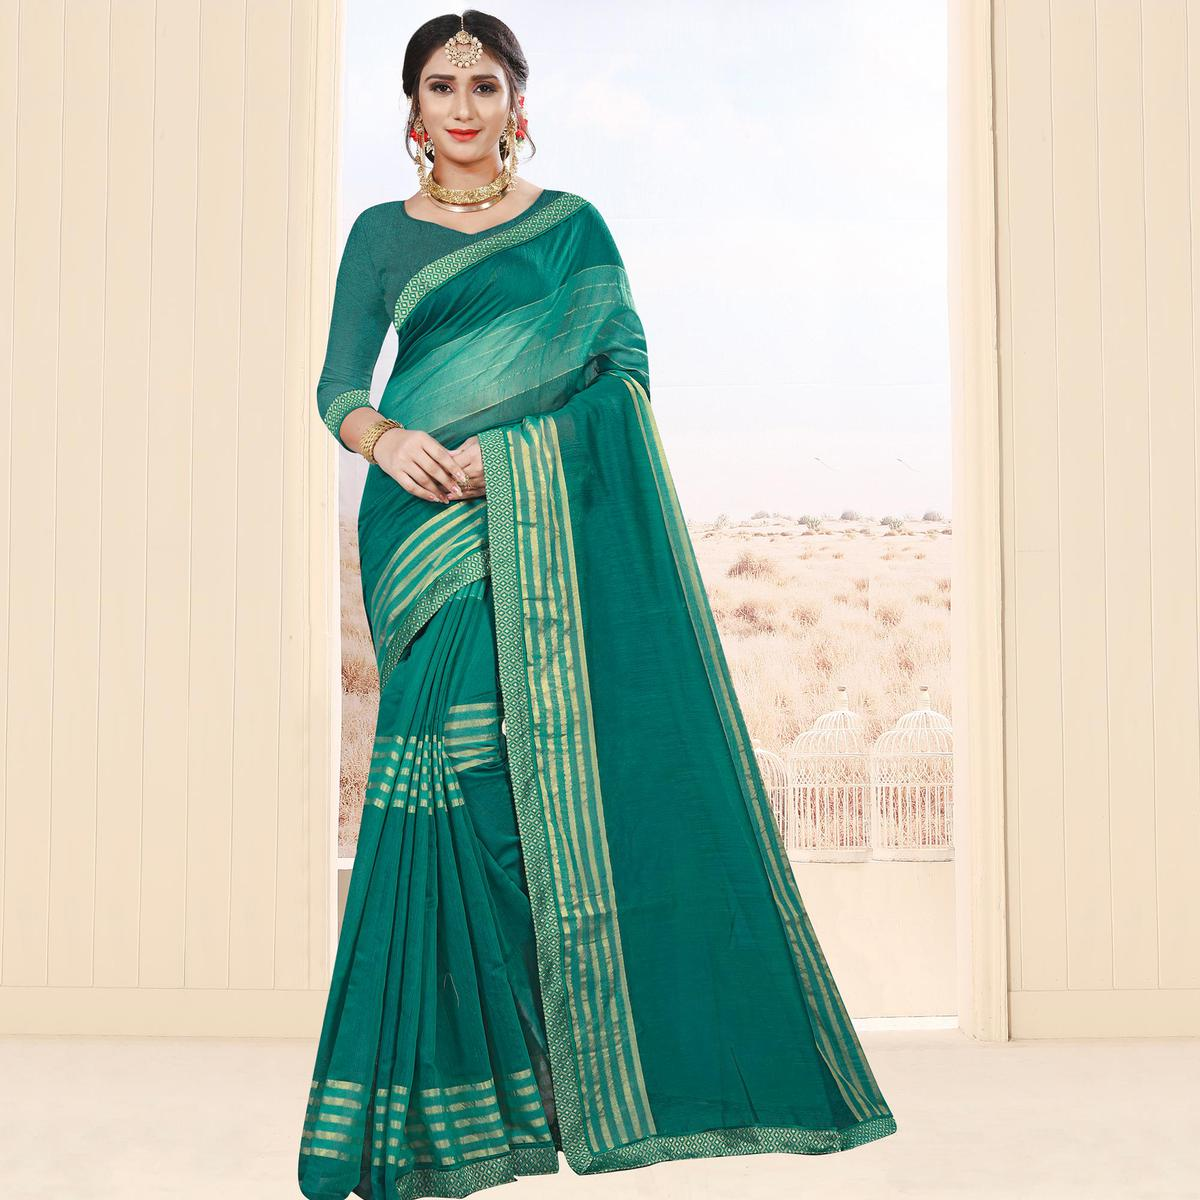 Radiant Turquoise Green Colored Festive Wear Cotton Saree